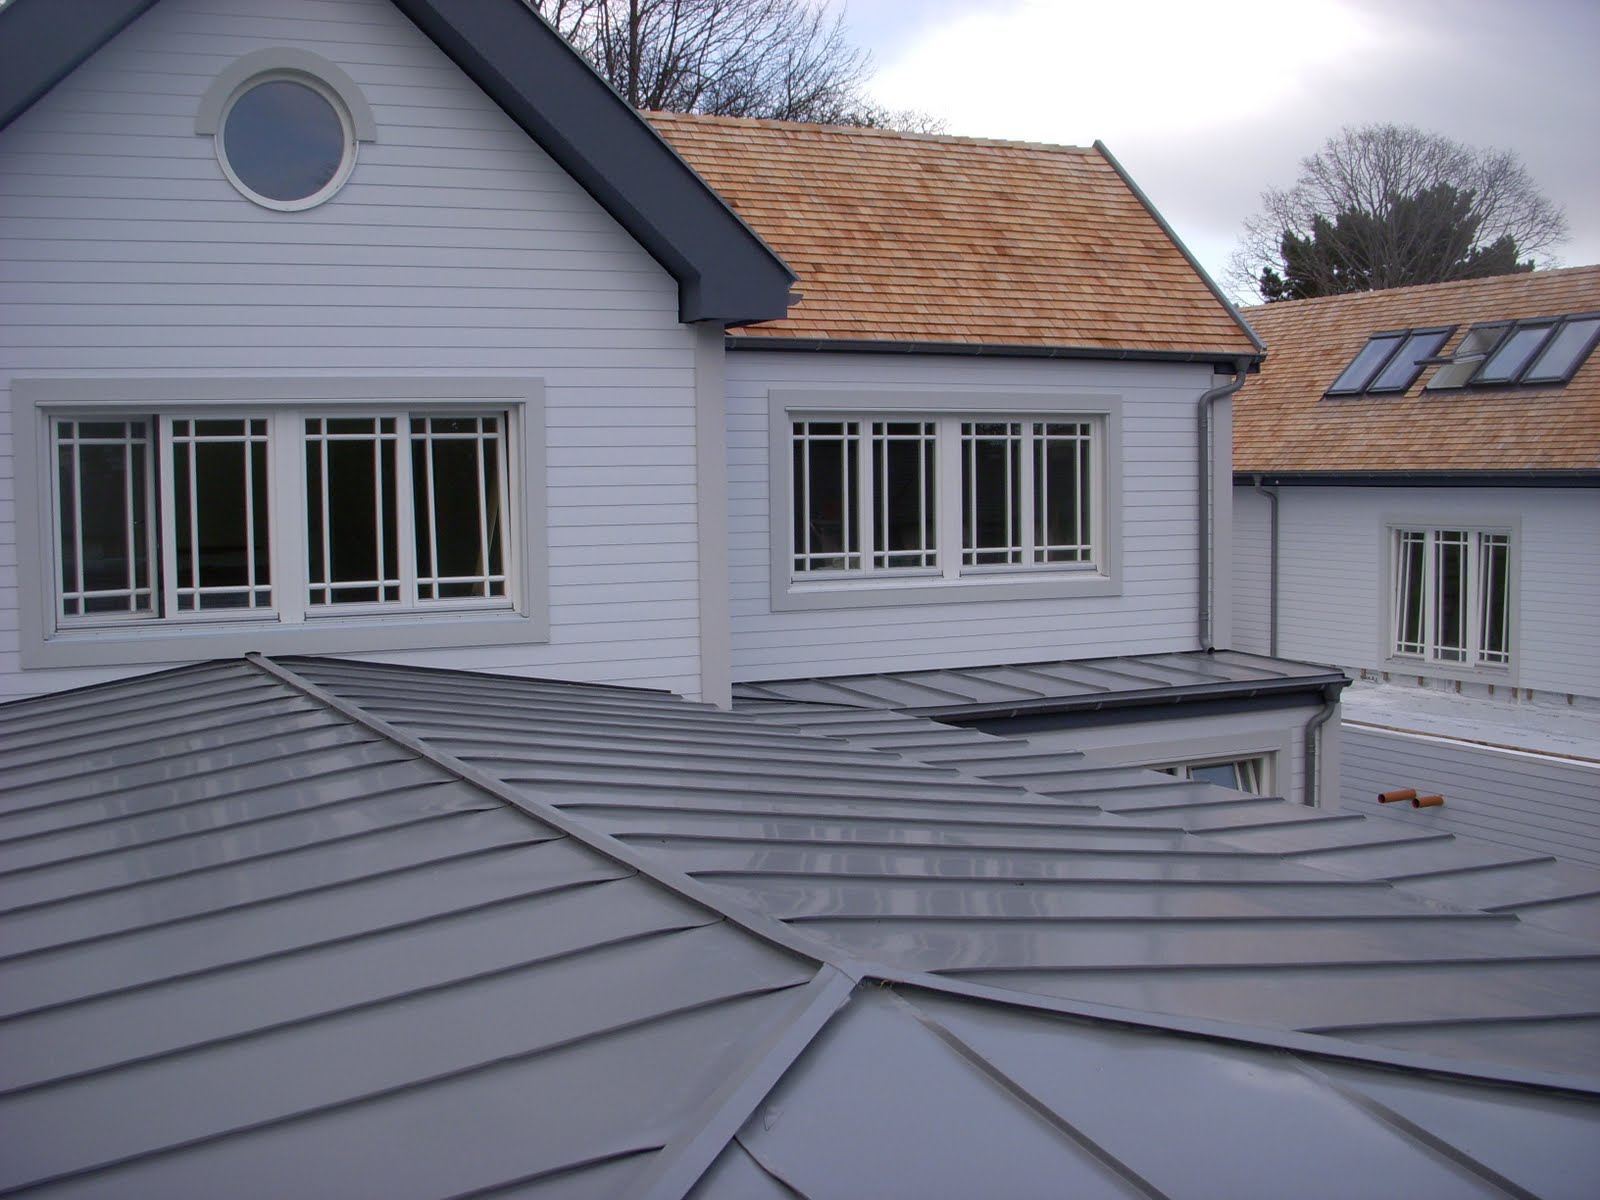 Zinc Roofs Amp Interlock 174 Lifetime Metal Roofing Systems